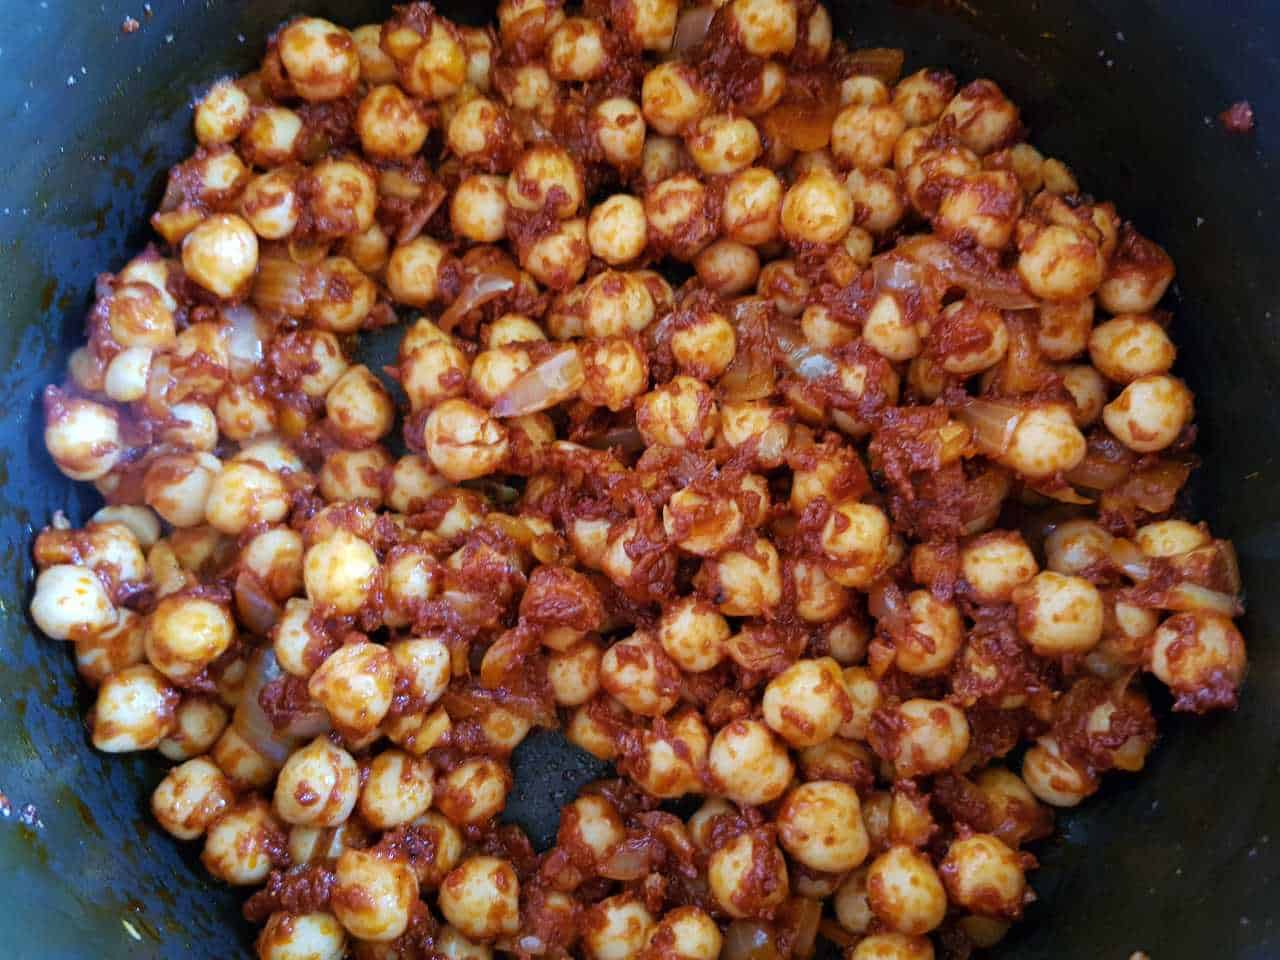 Chickpeas in a pot with tomato paste and spices.